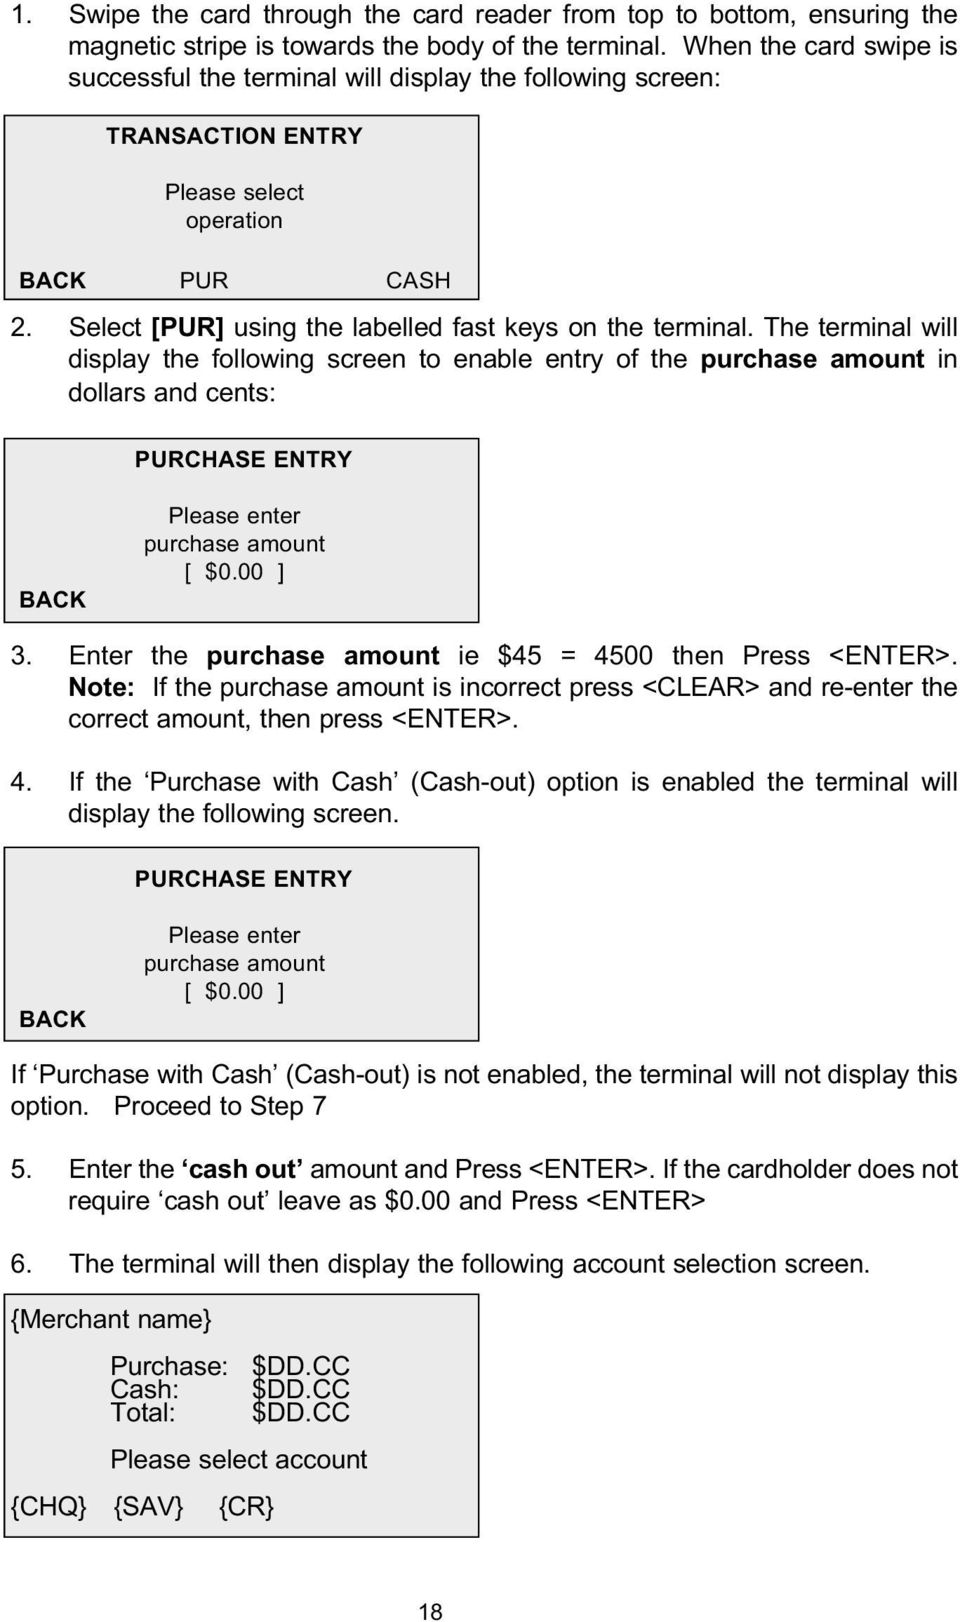 The terminal will display the following screen to enable entry of the purchase amount in dollars and cents: PURCHASE ENTRY Please enter purchase amount [ $0.00 ] 3.